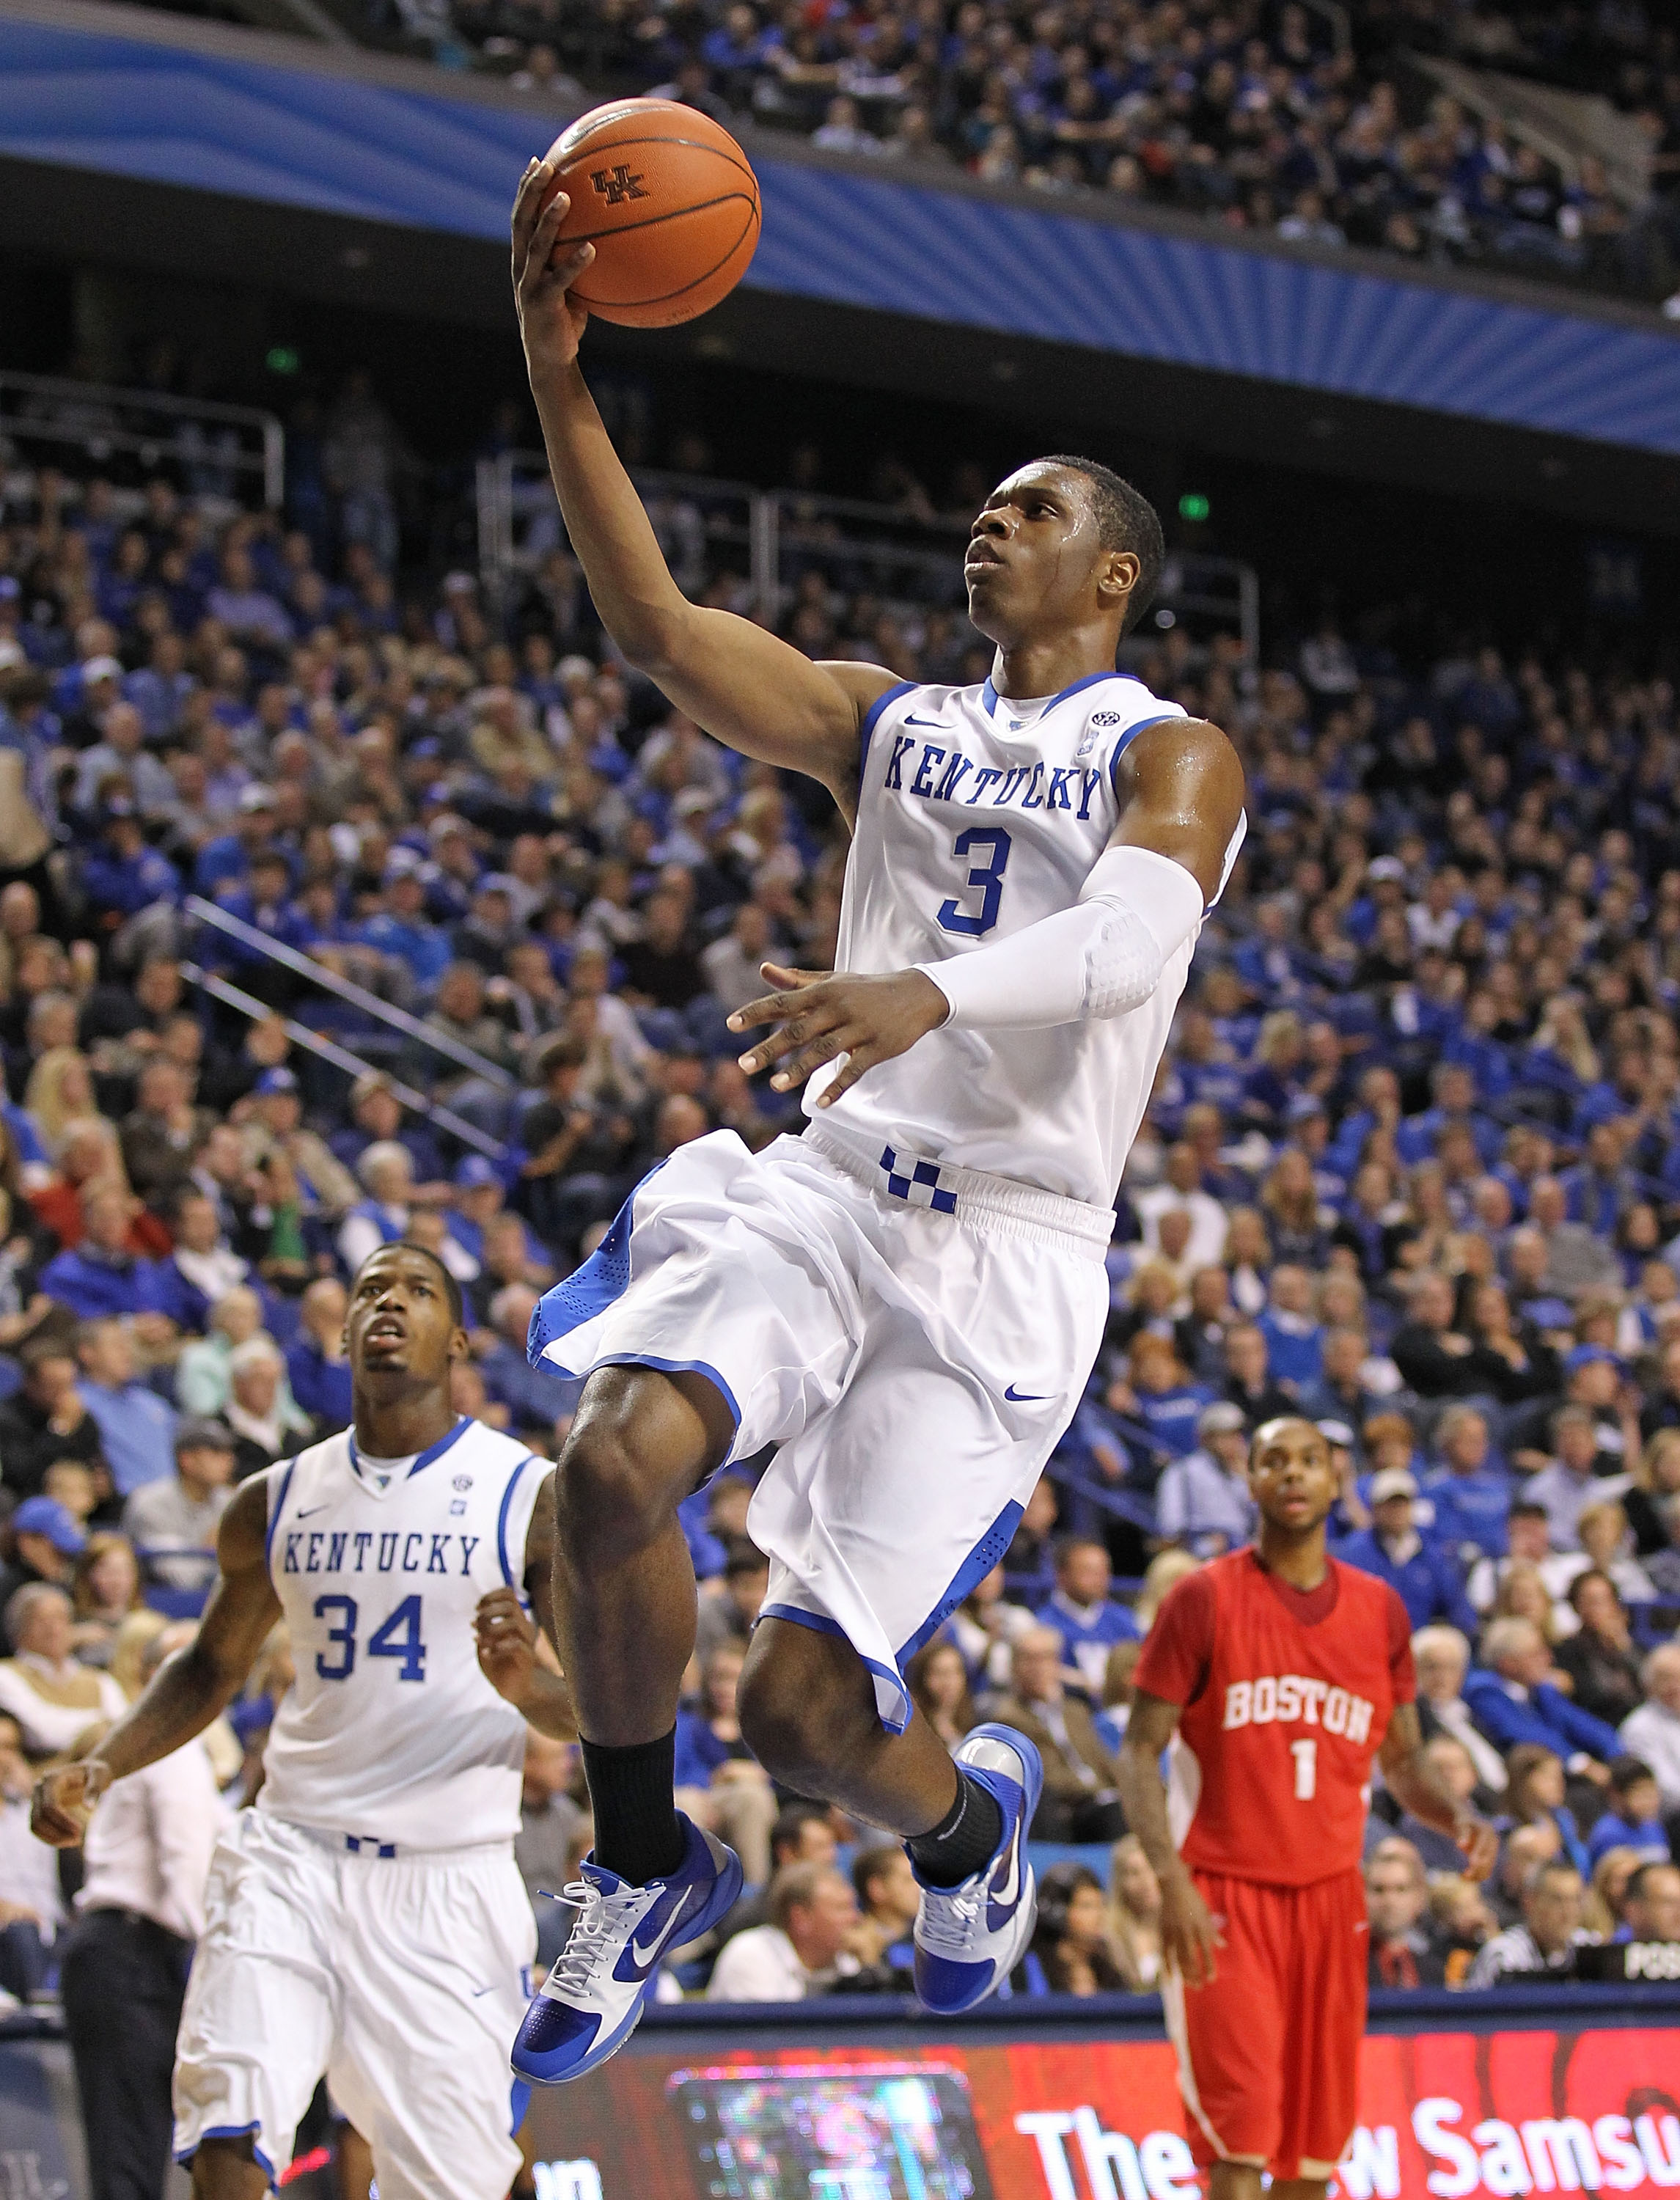 LEXINGTON, KY - NOVEMBER 30:  Terrence Jones #3 of the Kentucky Wildcats shoots the ball during the game against the Boston University Terriers on November 30, 2010 in Lexington, Kentucky.  (Photo by Andy Lyons/Getty Images)